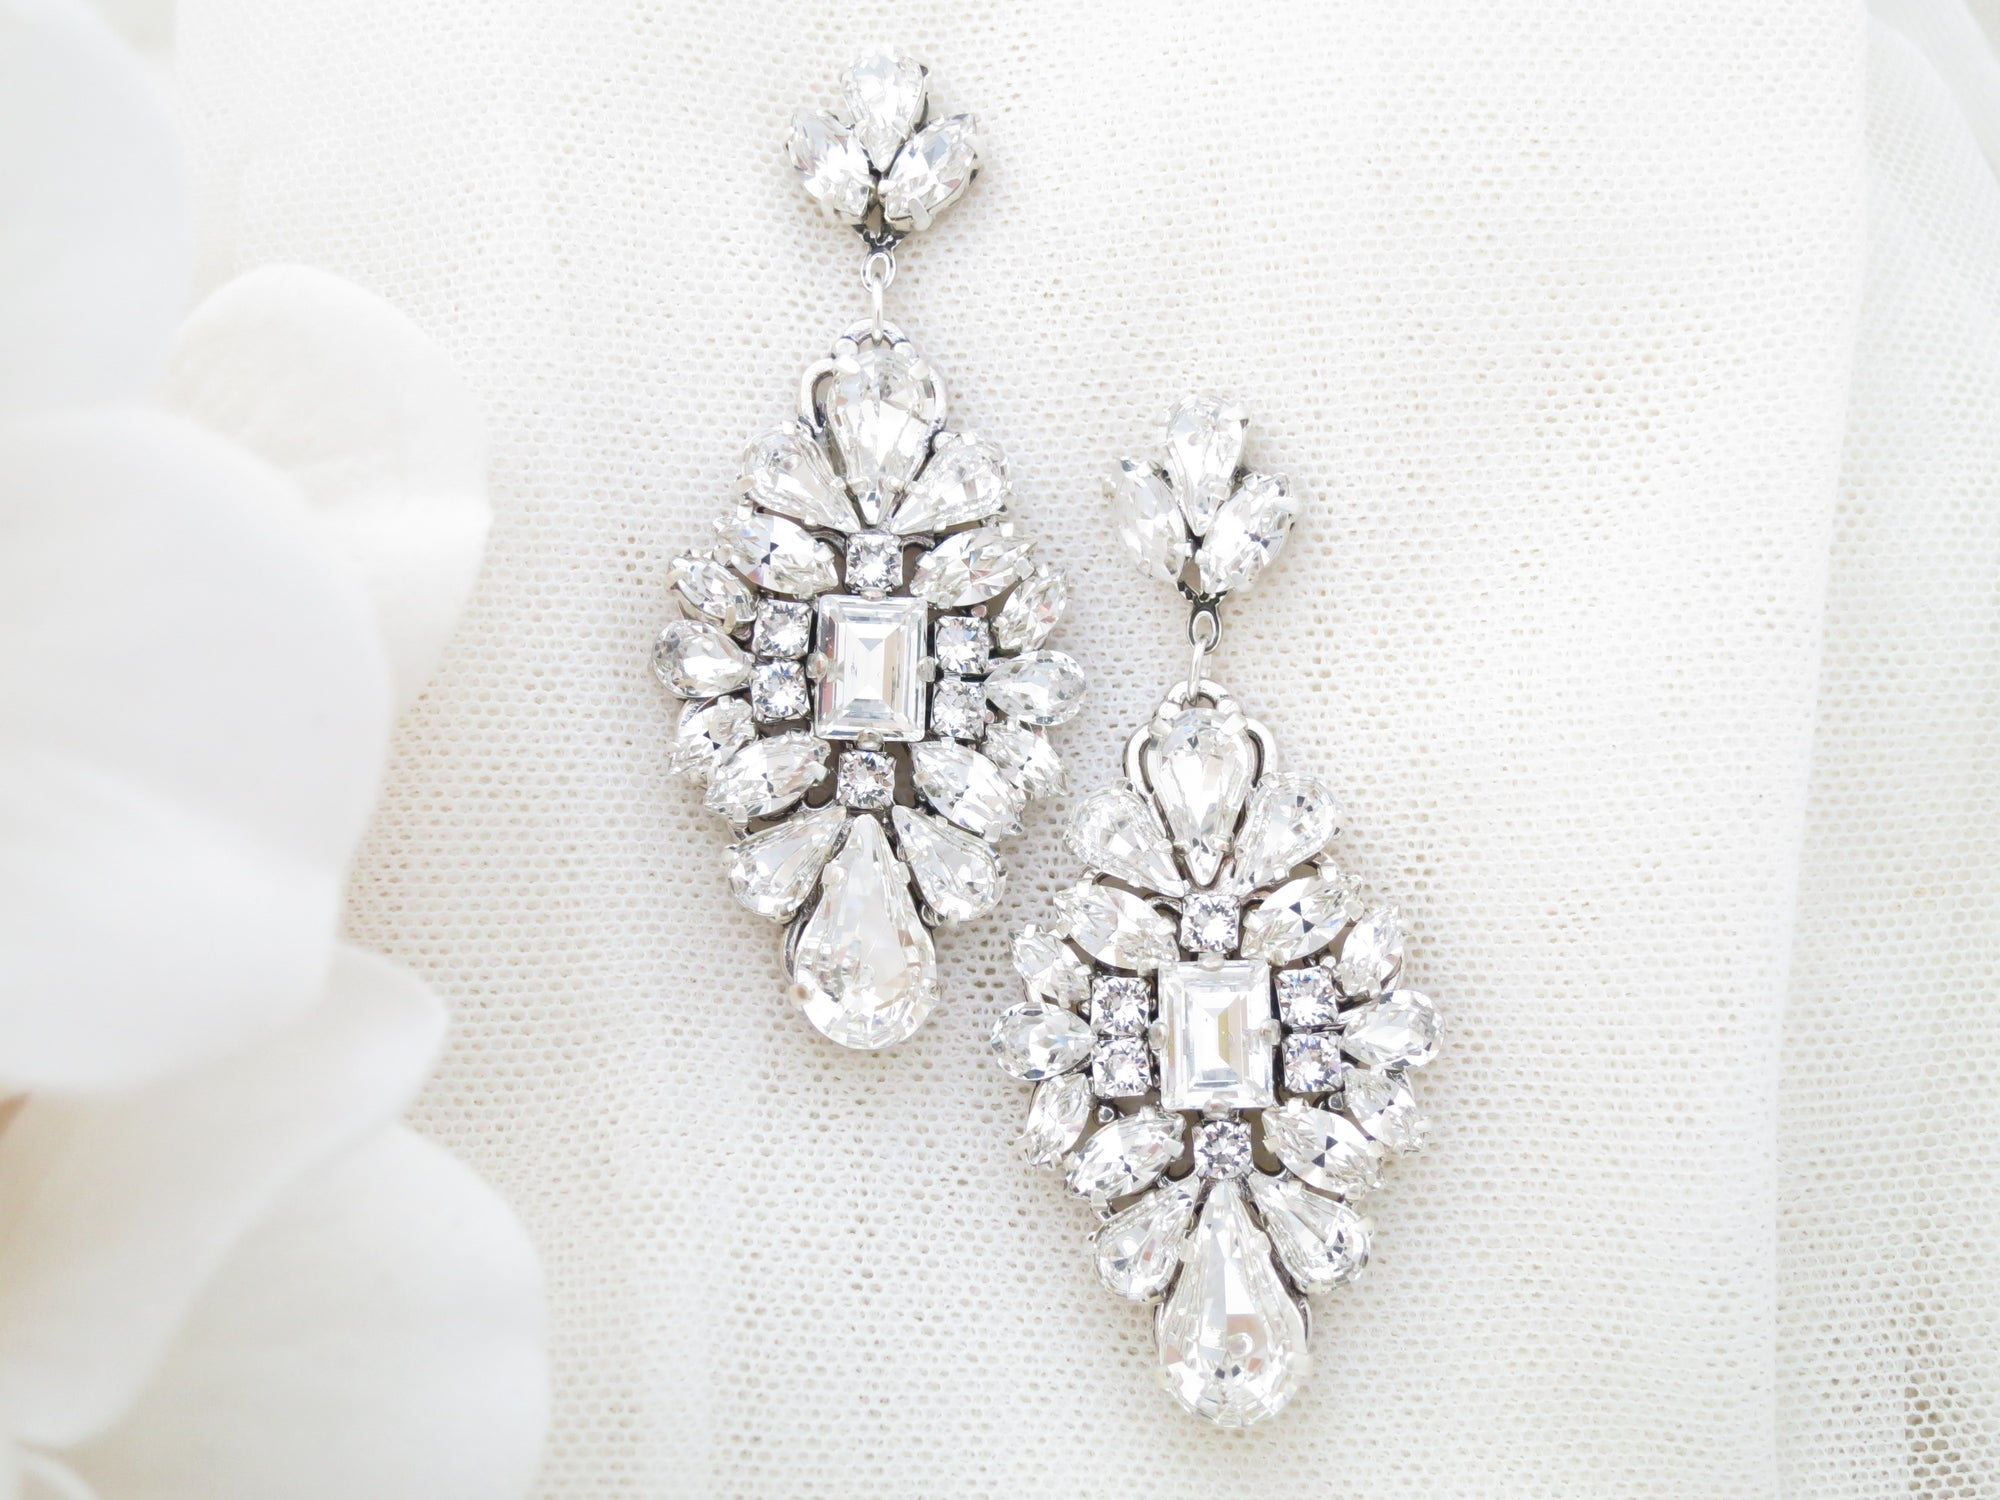 TEMPTRESS:  Glamorous Diamond Drop Earrings - BlingBaddaBoom - Minimalist, Vintage, Modern Wedding and Bridal Jewelry